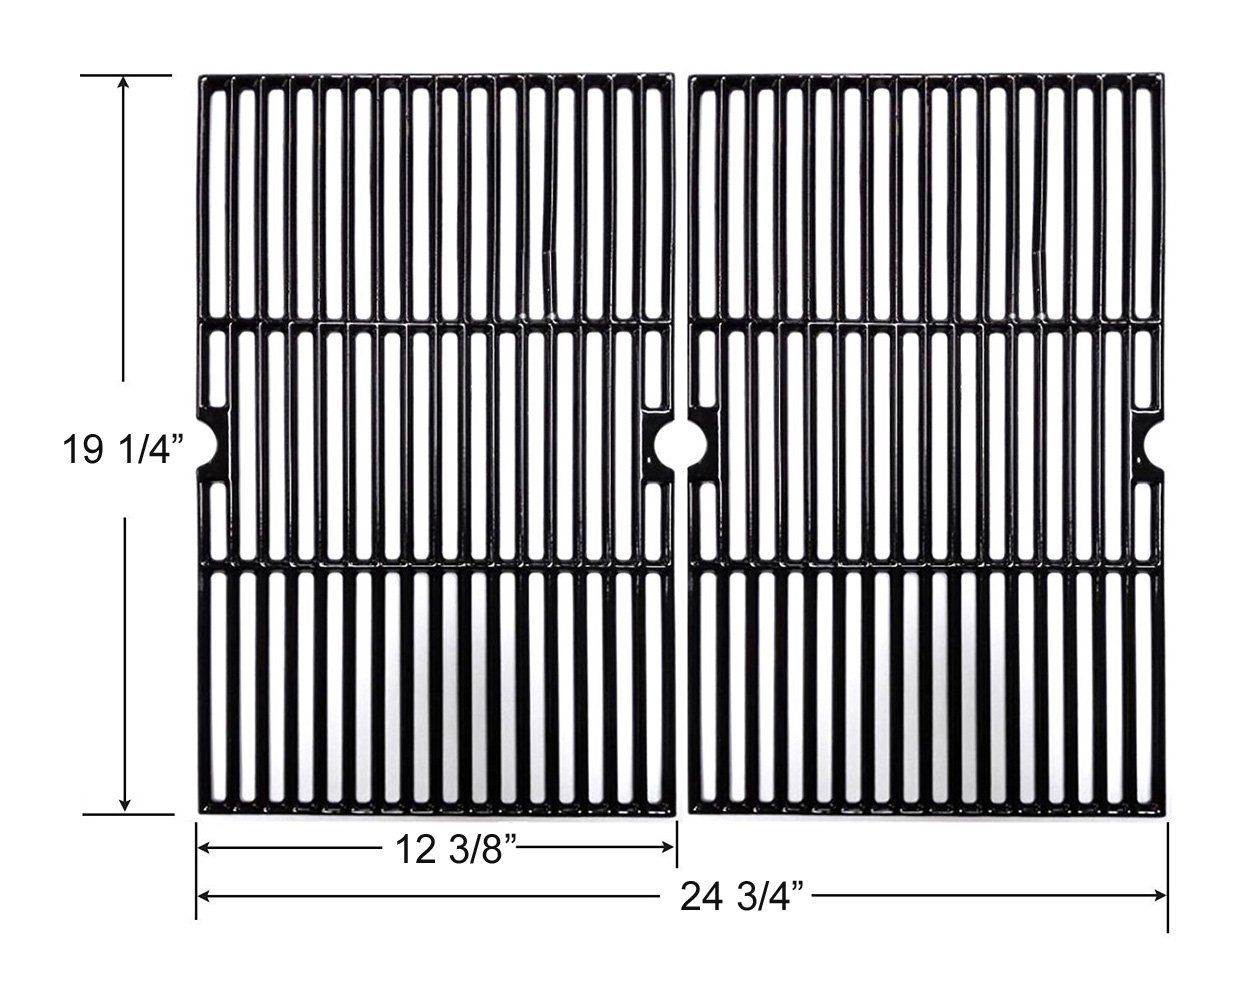 CG101 Universal Gas Grill Grate Cast Iron Cooking Grid